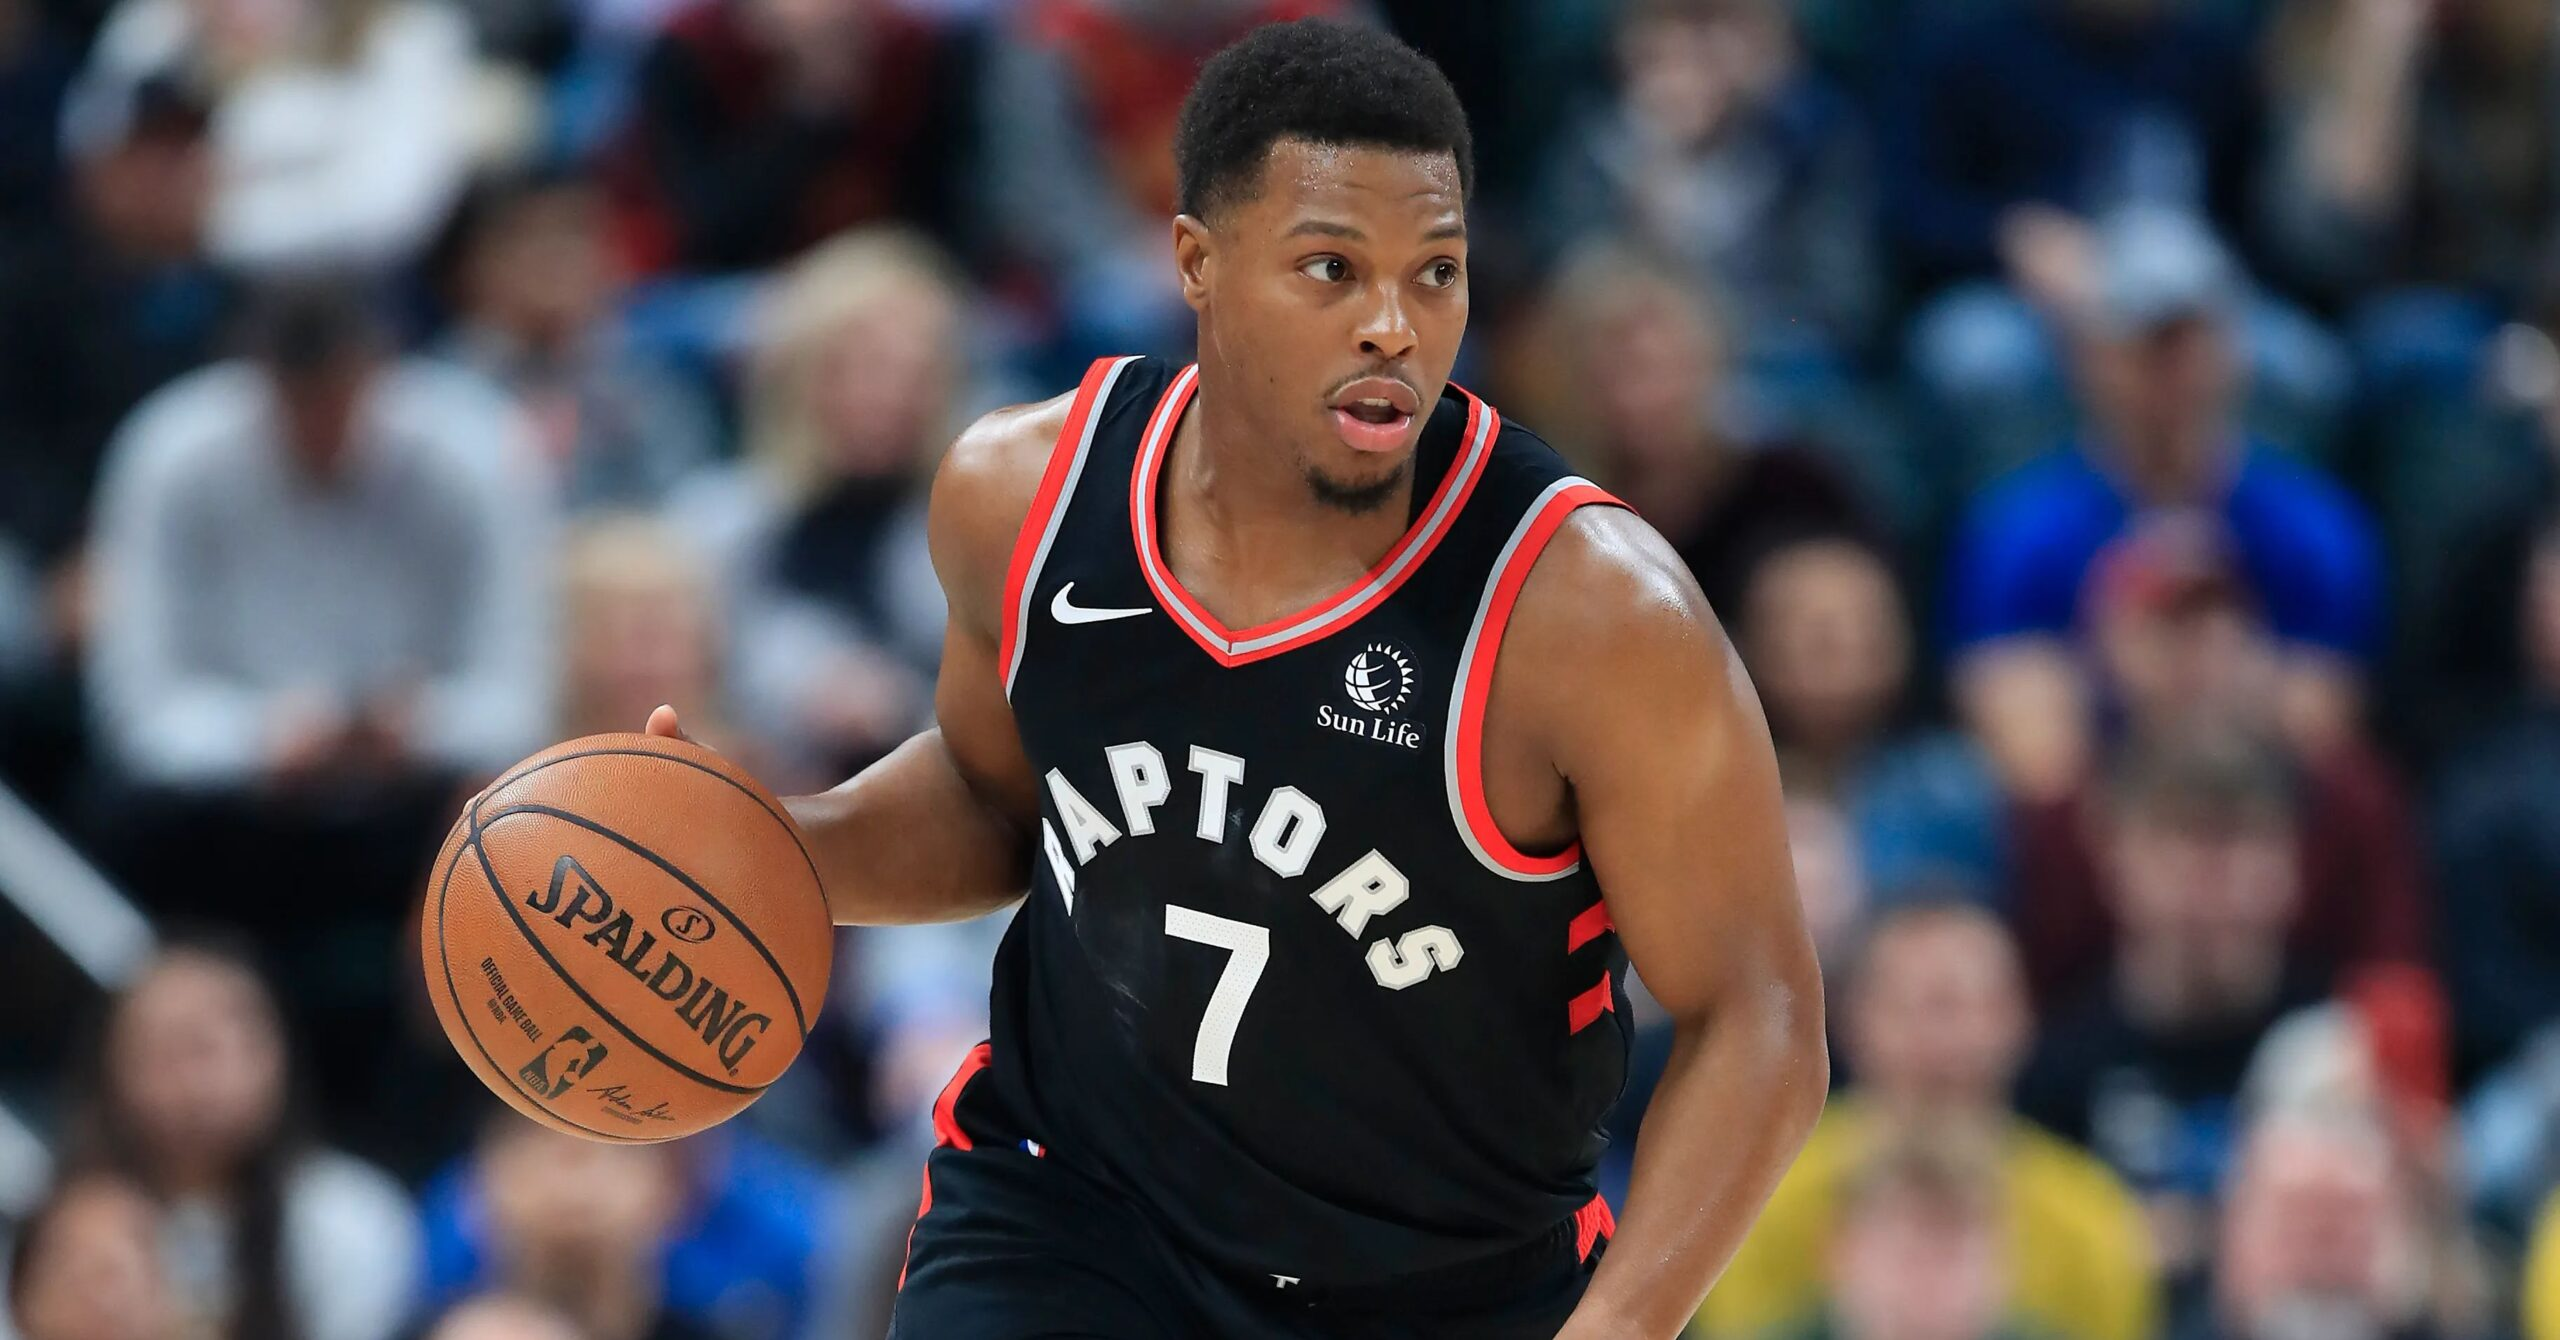 NBA Rumors: Kyle Lowry To Lakers, Kyle Kuzma To Timberwolves In Suggested 3-Way Deal Involving Raptors